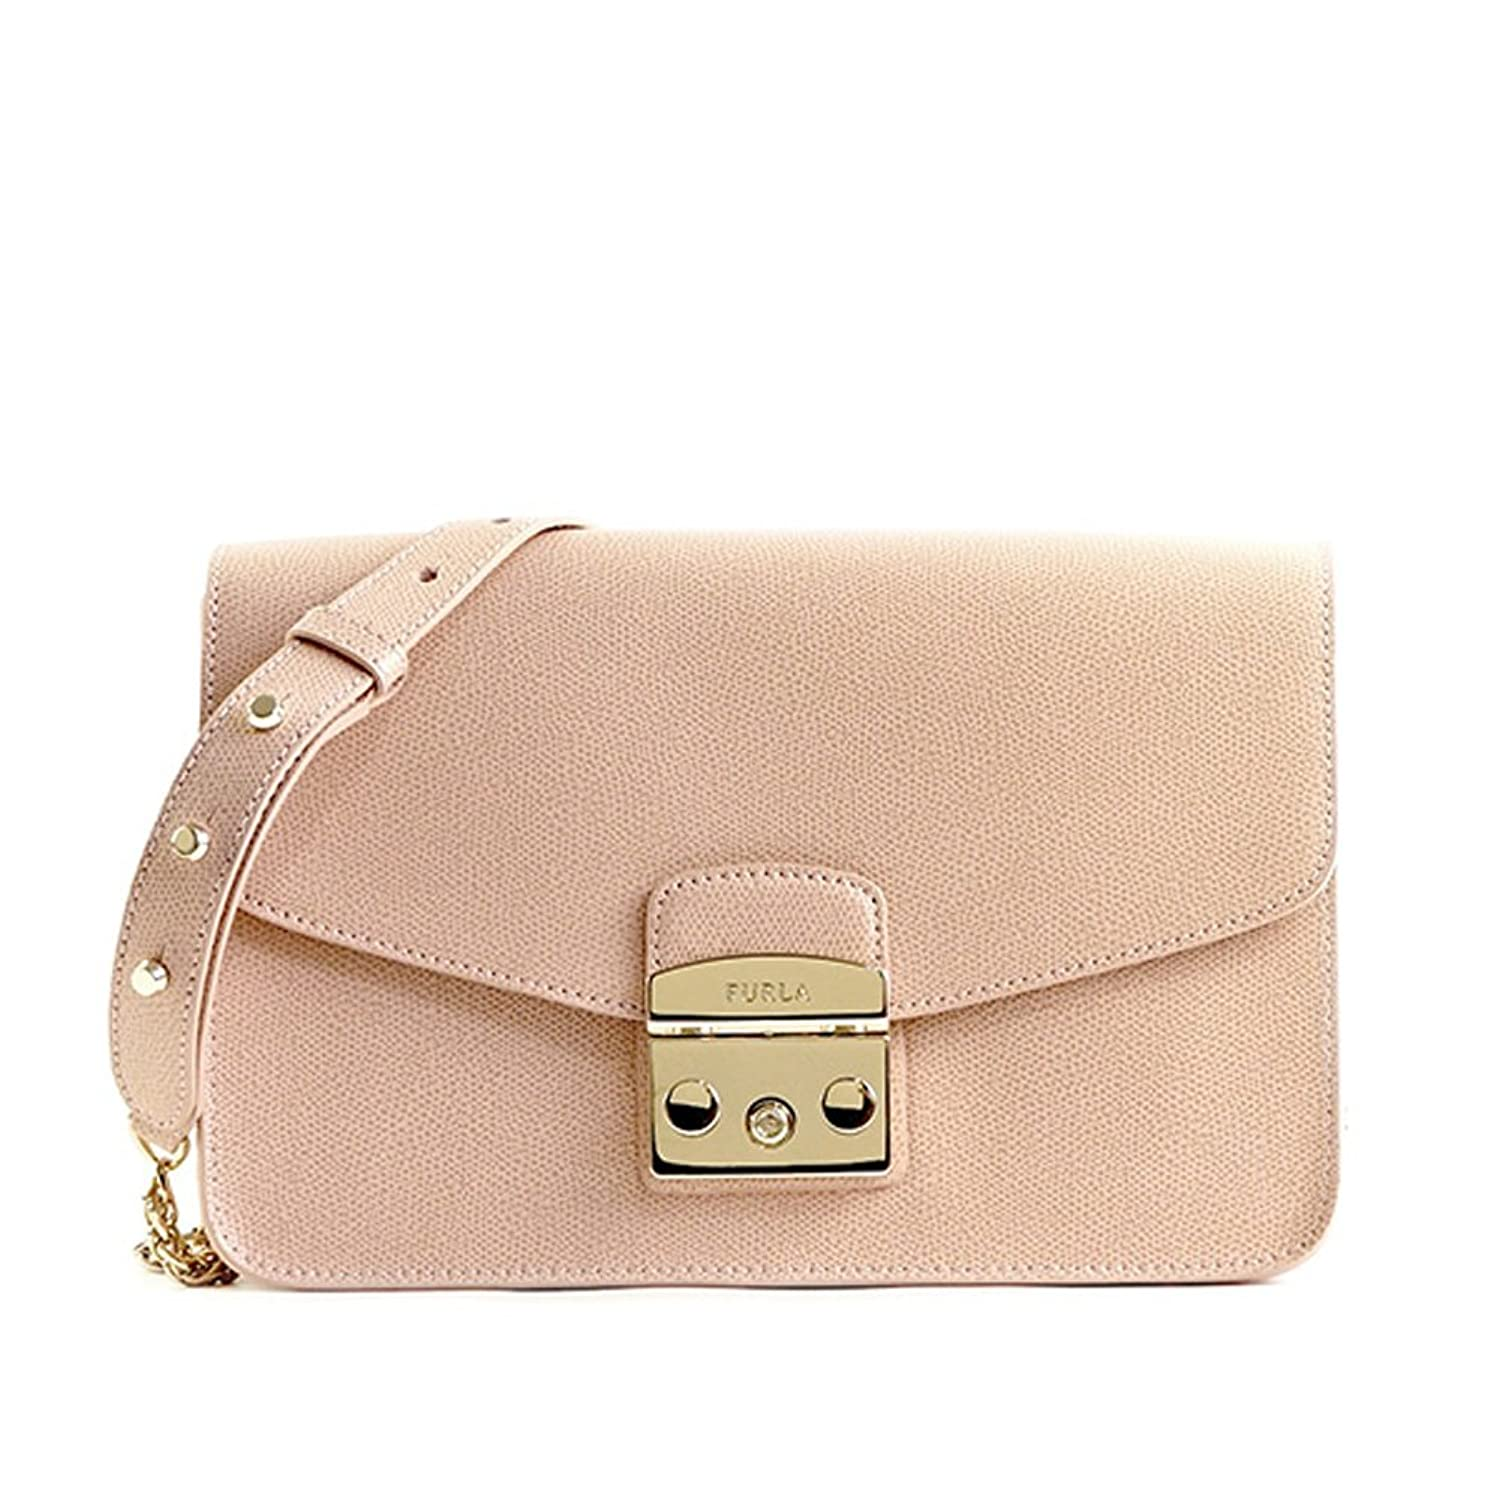 フルラ FURLA ショルダーバッグ 『METROPOLIS』 METROPOLIS S SHOULDER BAG [BHV7-ARE-6M0/MOONSTONE] [並行輸入品] B07BJDW1FJ